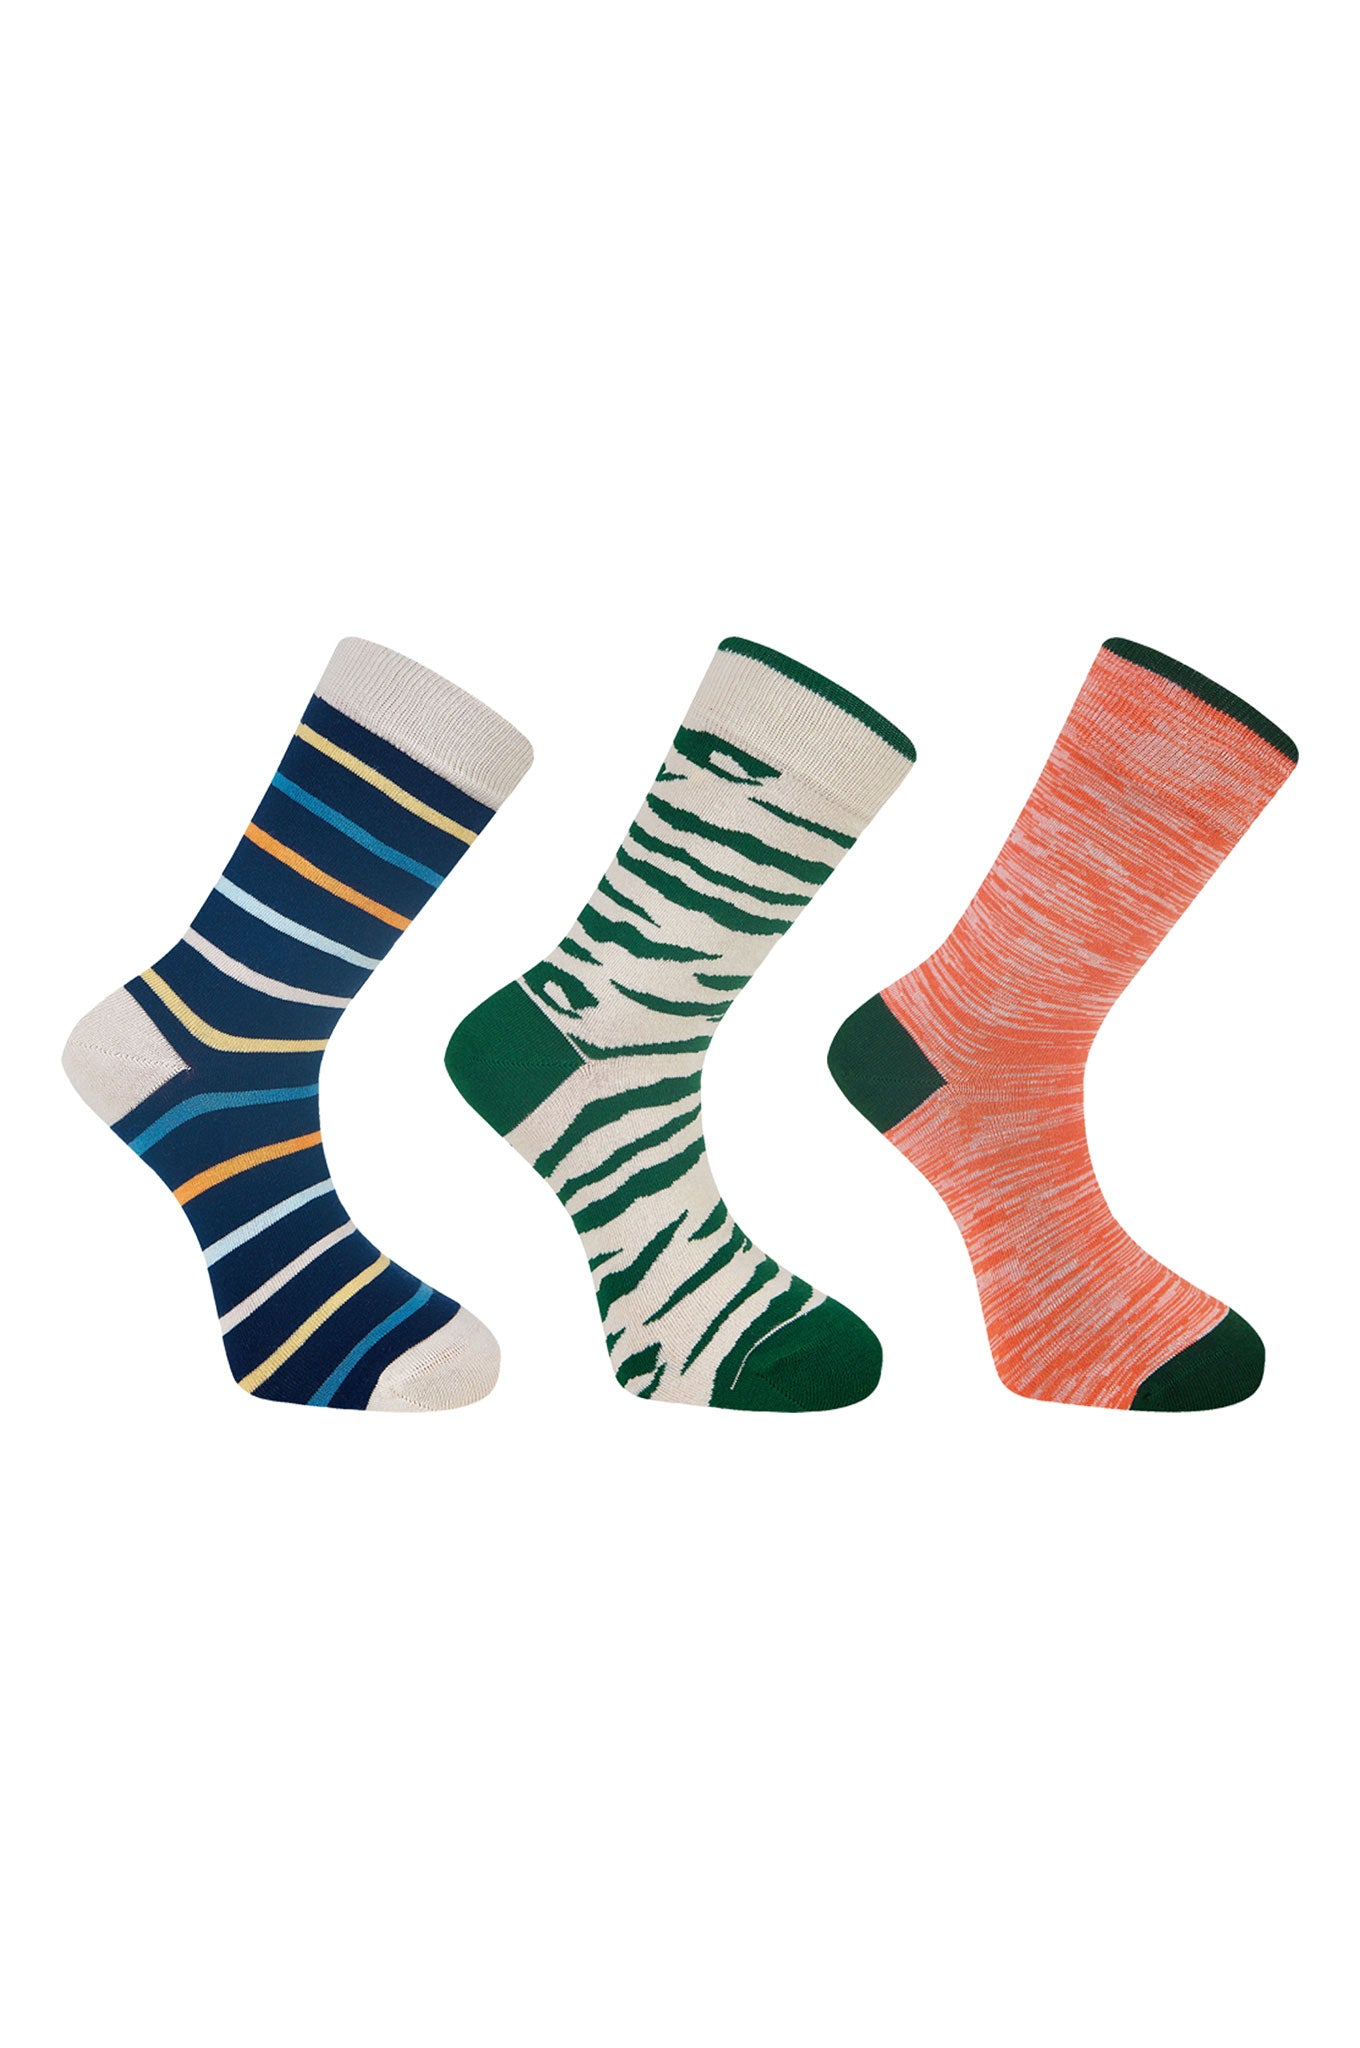 LUCKY DIP Sock Bundle (3 Pairs)